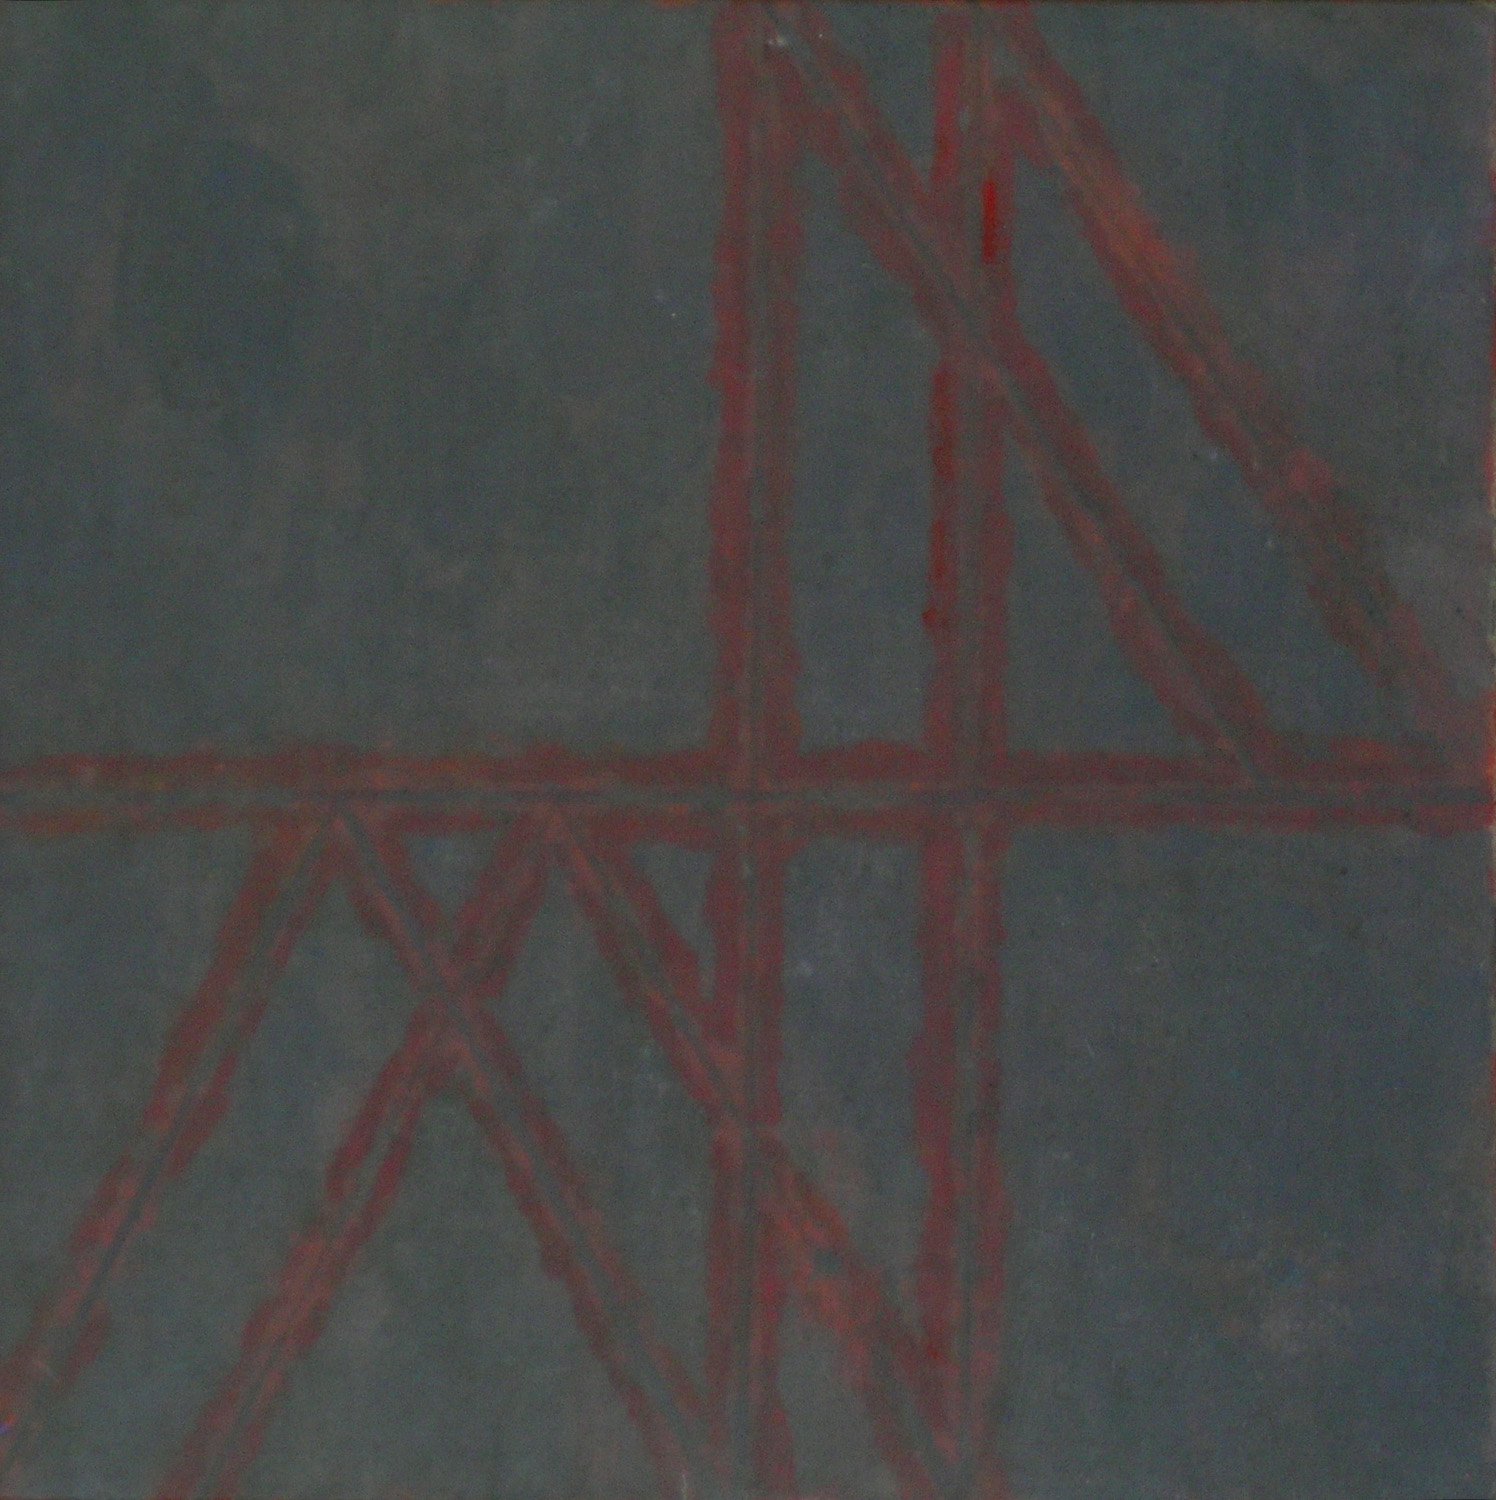 Mist Structure,  1975 oil and sand on canvas, 16 x 16 inches